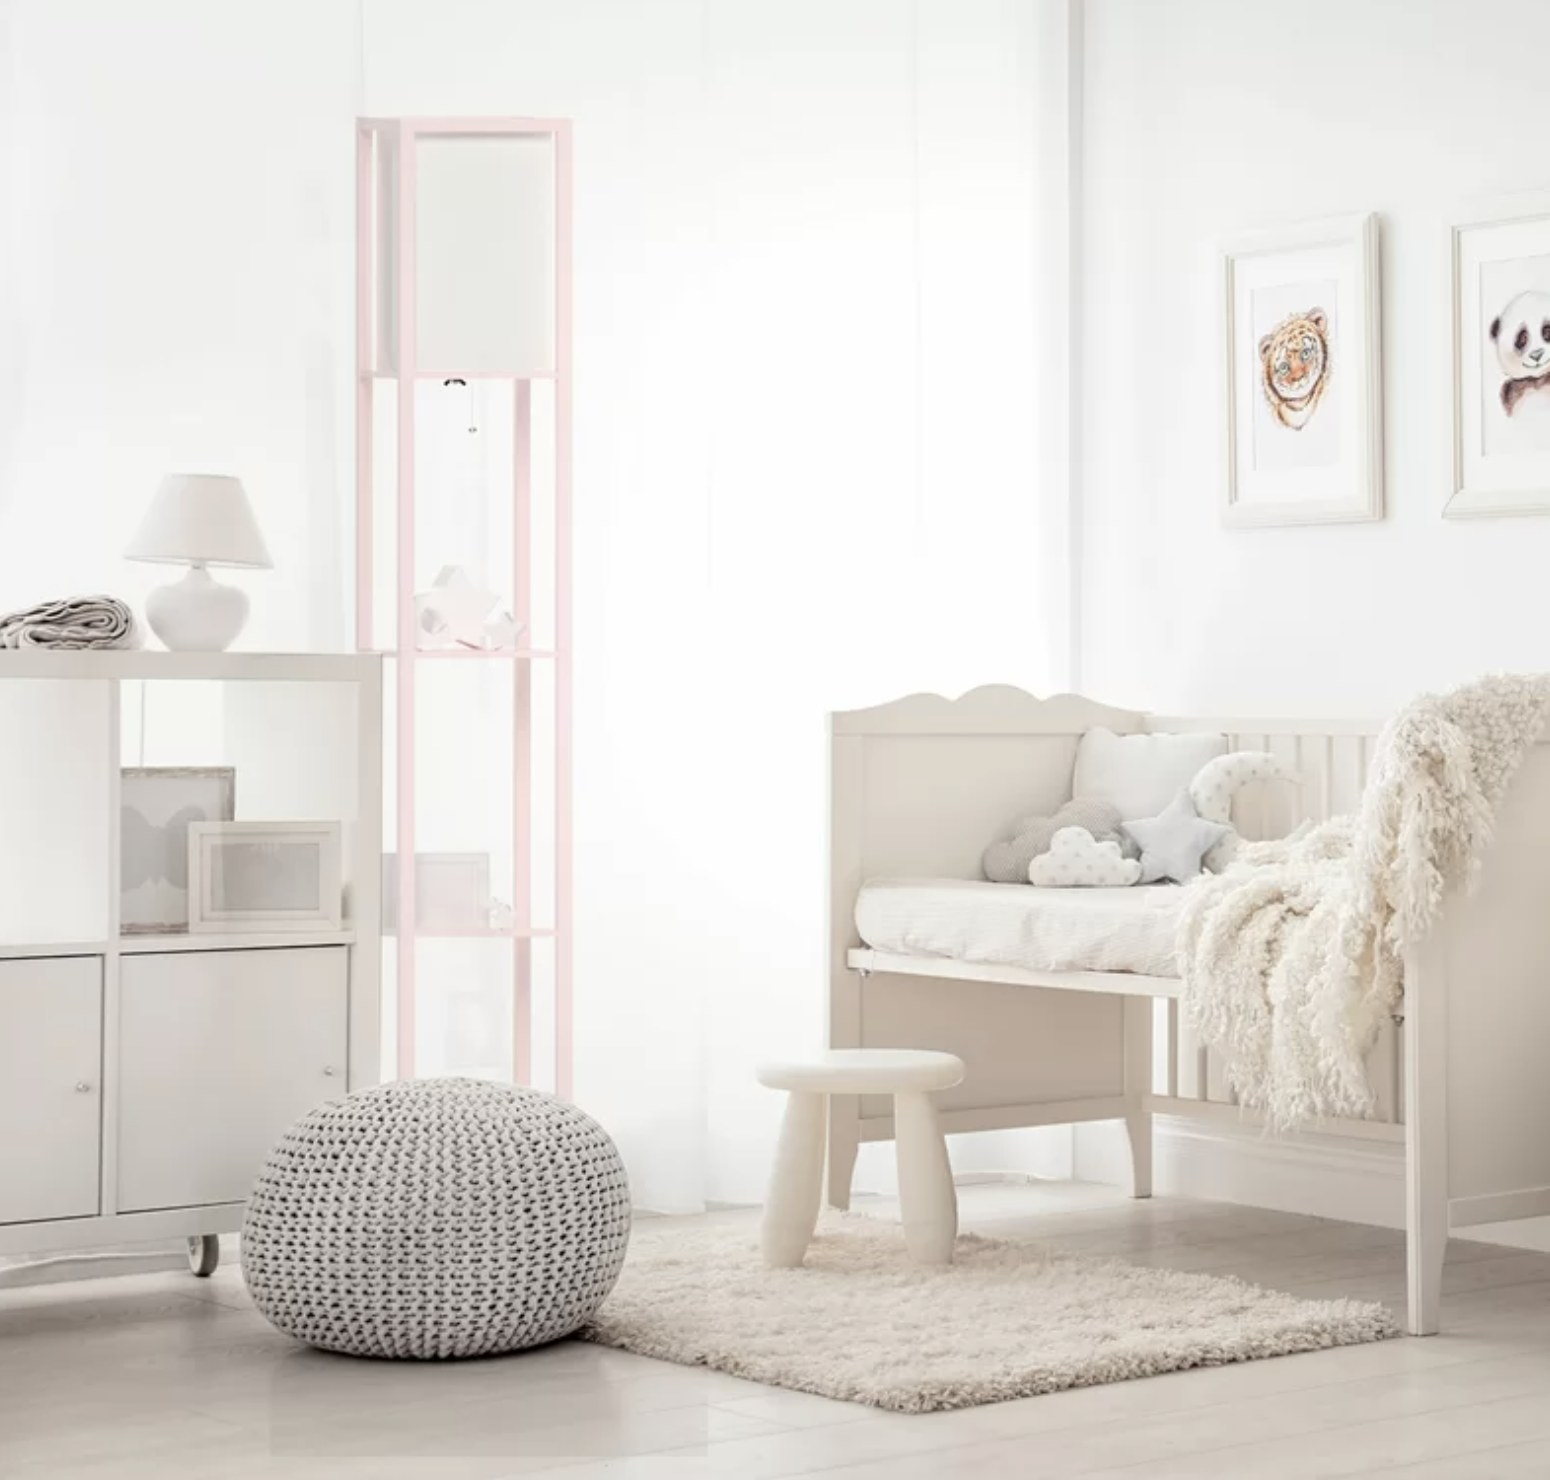 The pink floor lamp with shelves in a nursery